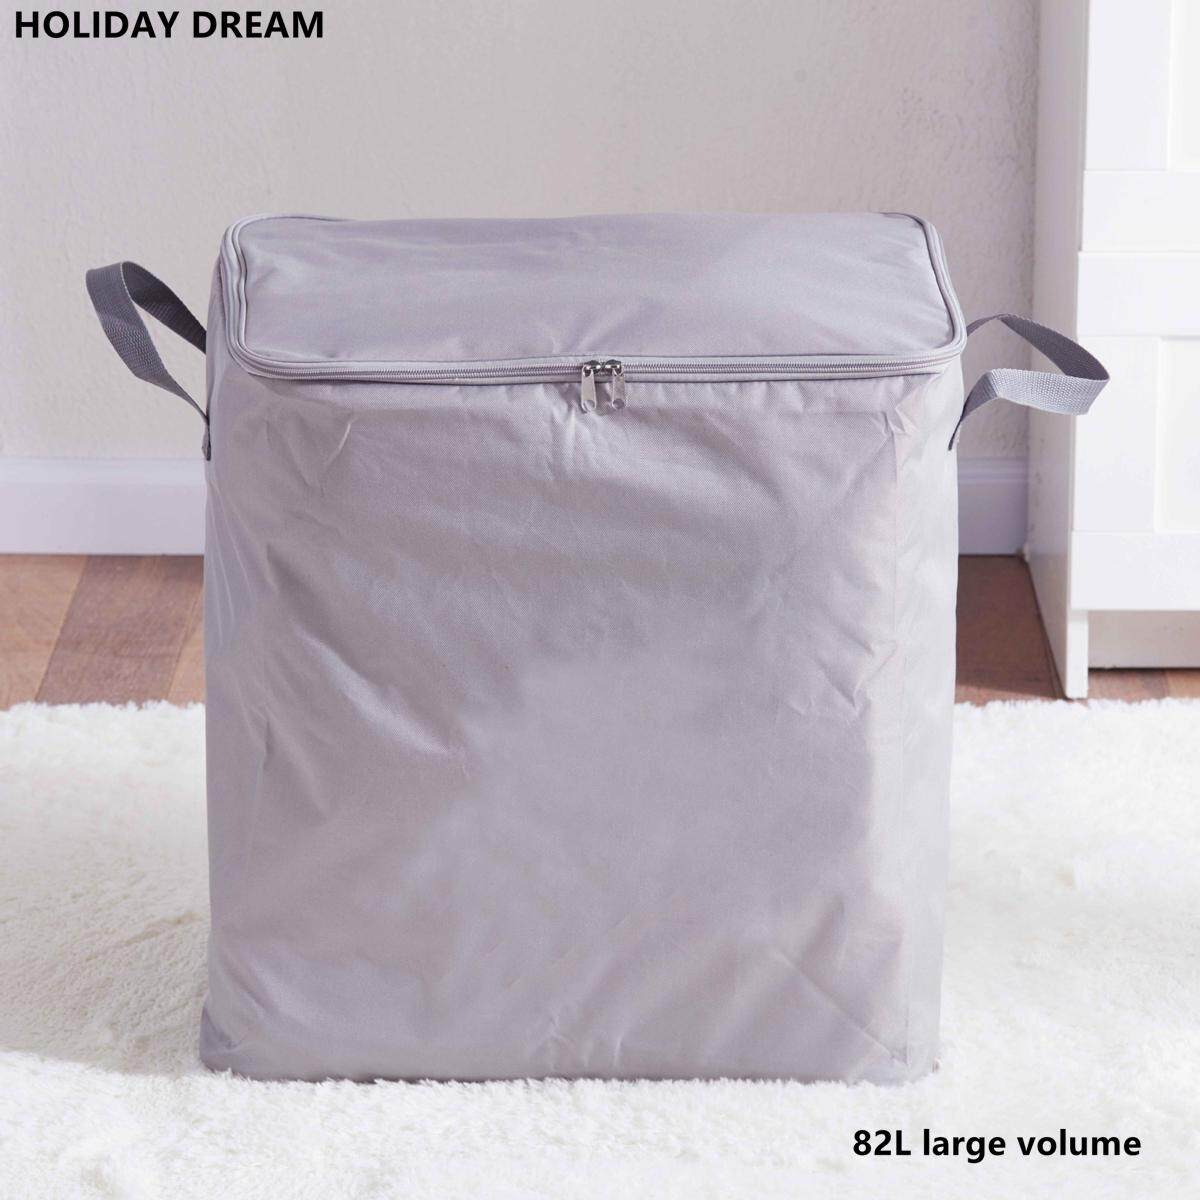 82L large volume Oxford cloth clothes quilt storage bag can be washed